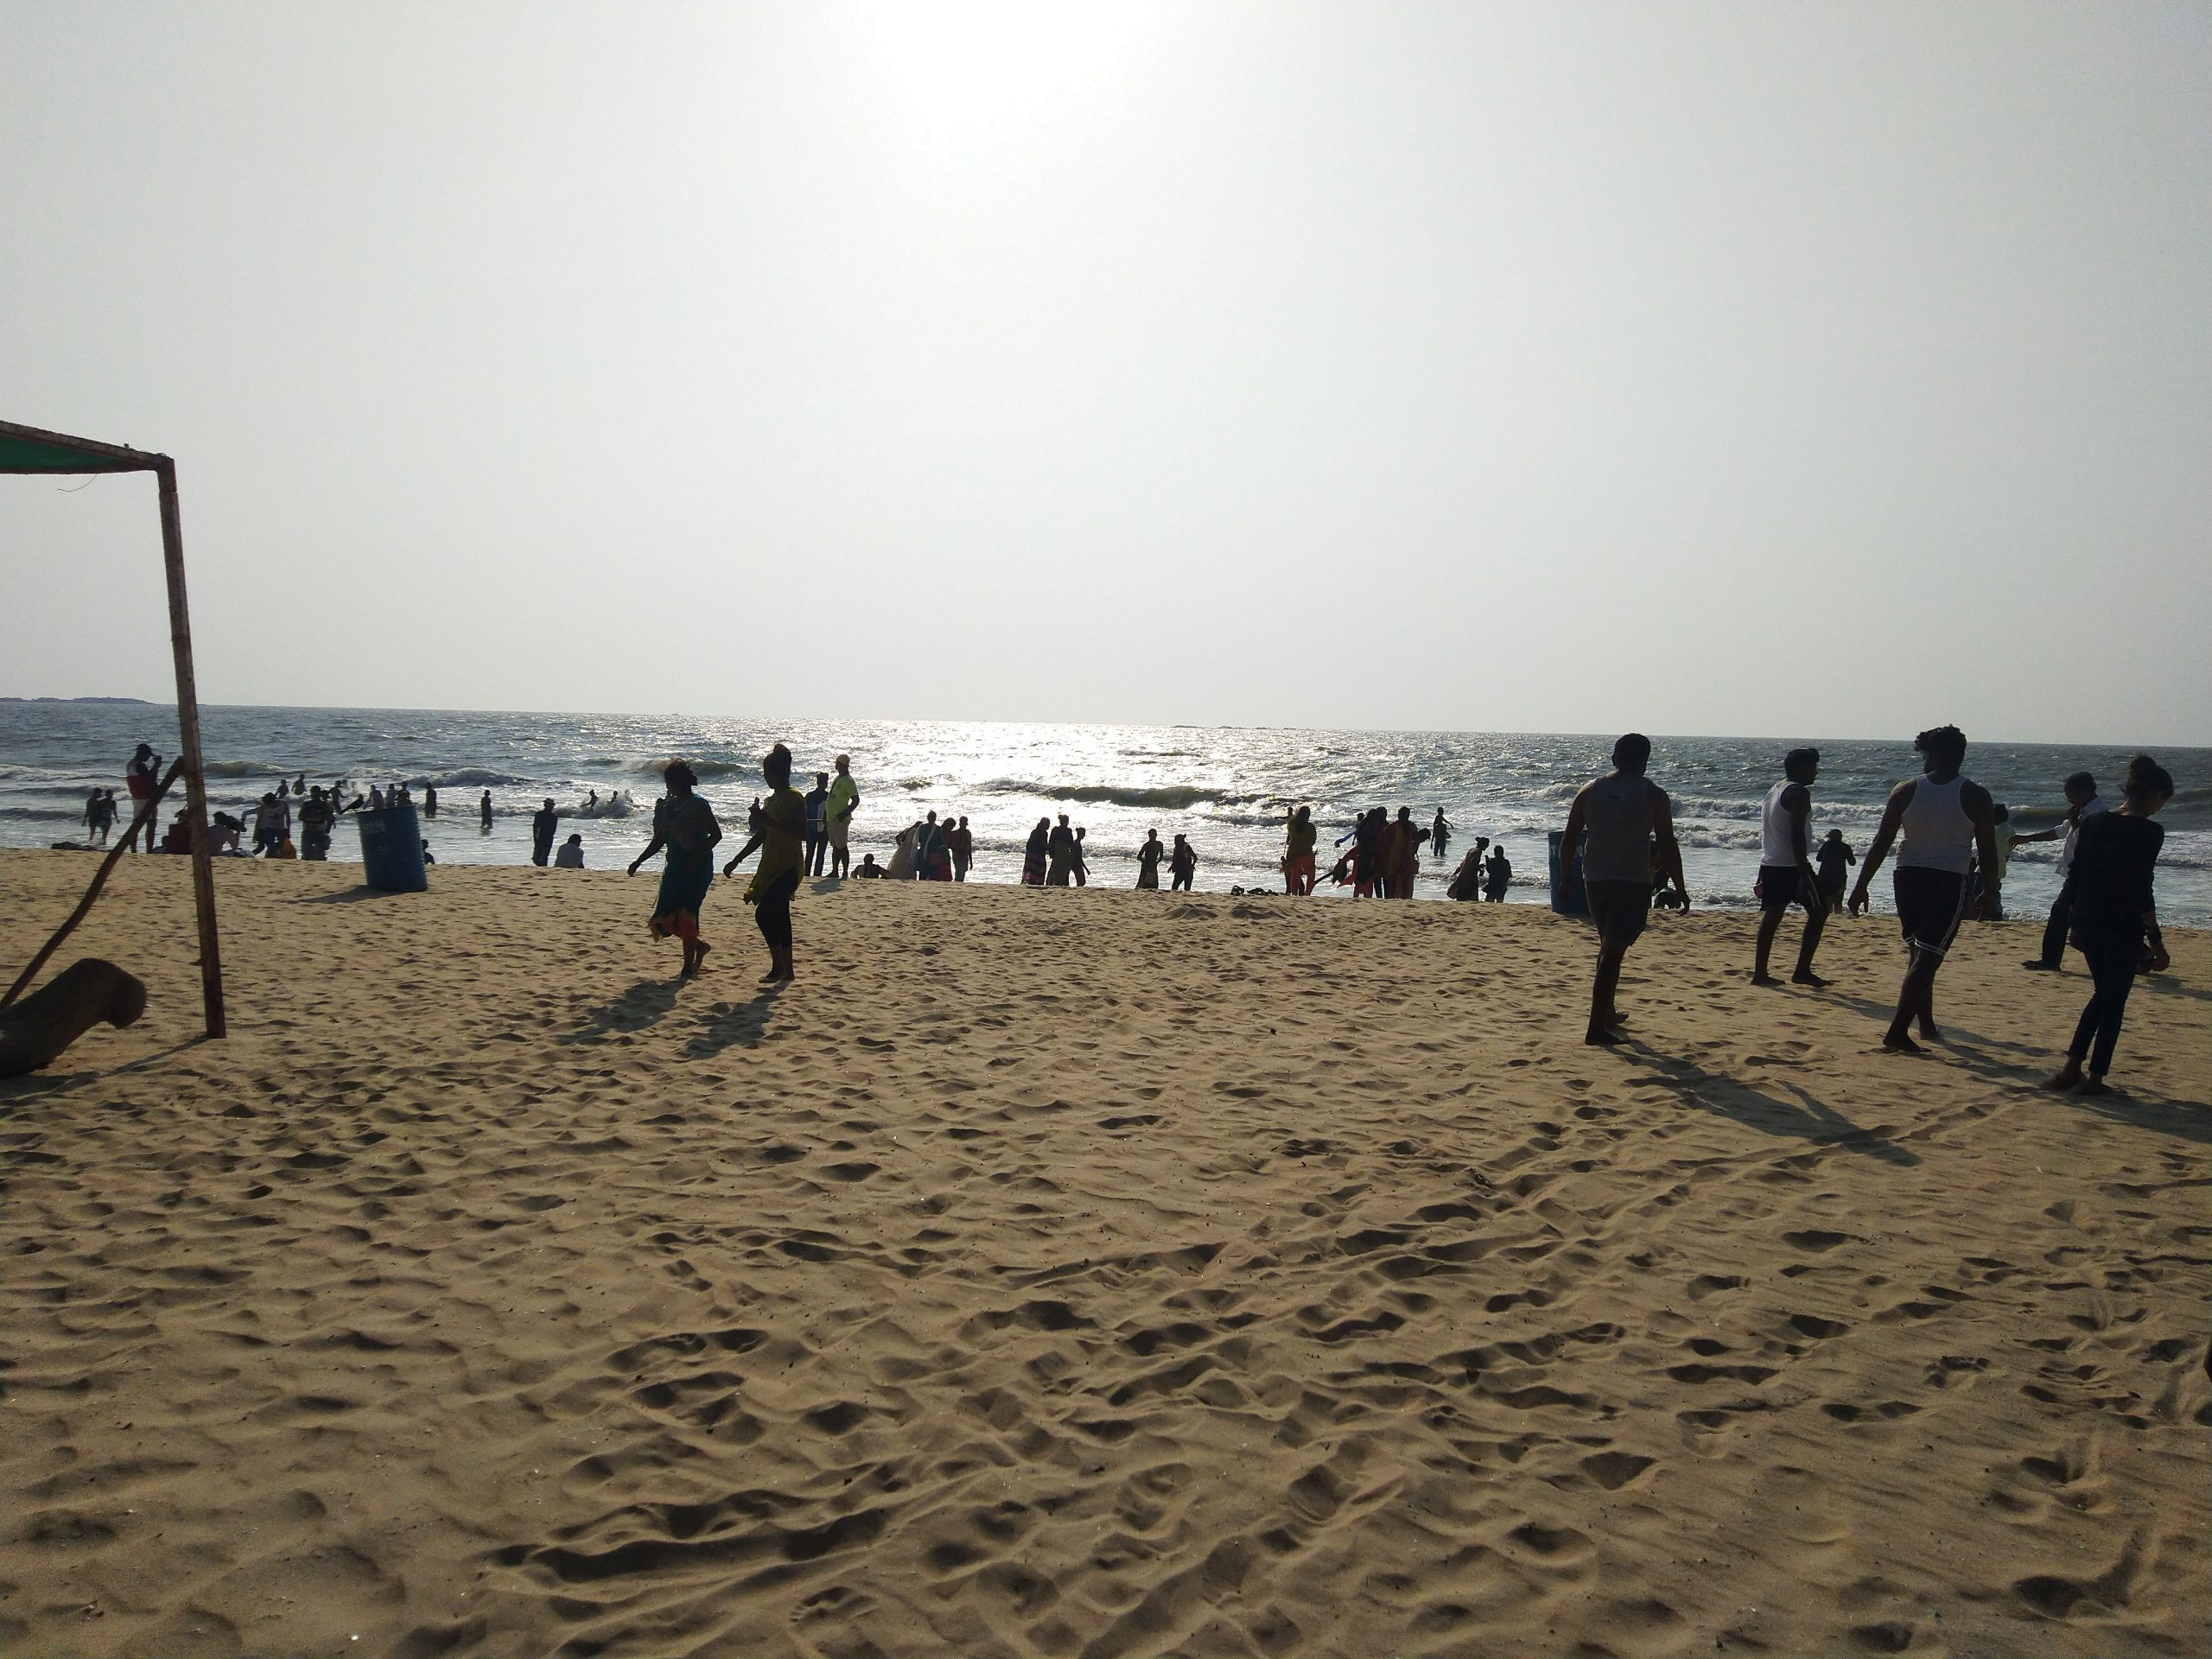 People at a beach